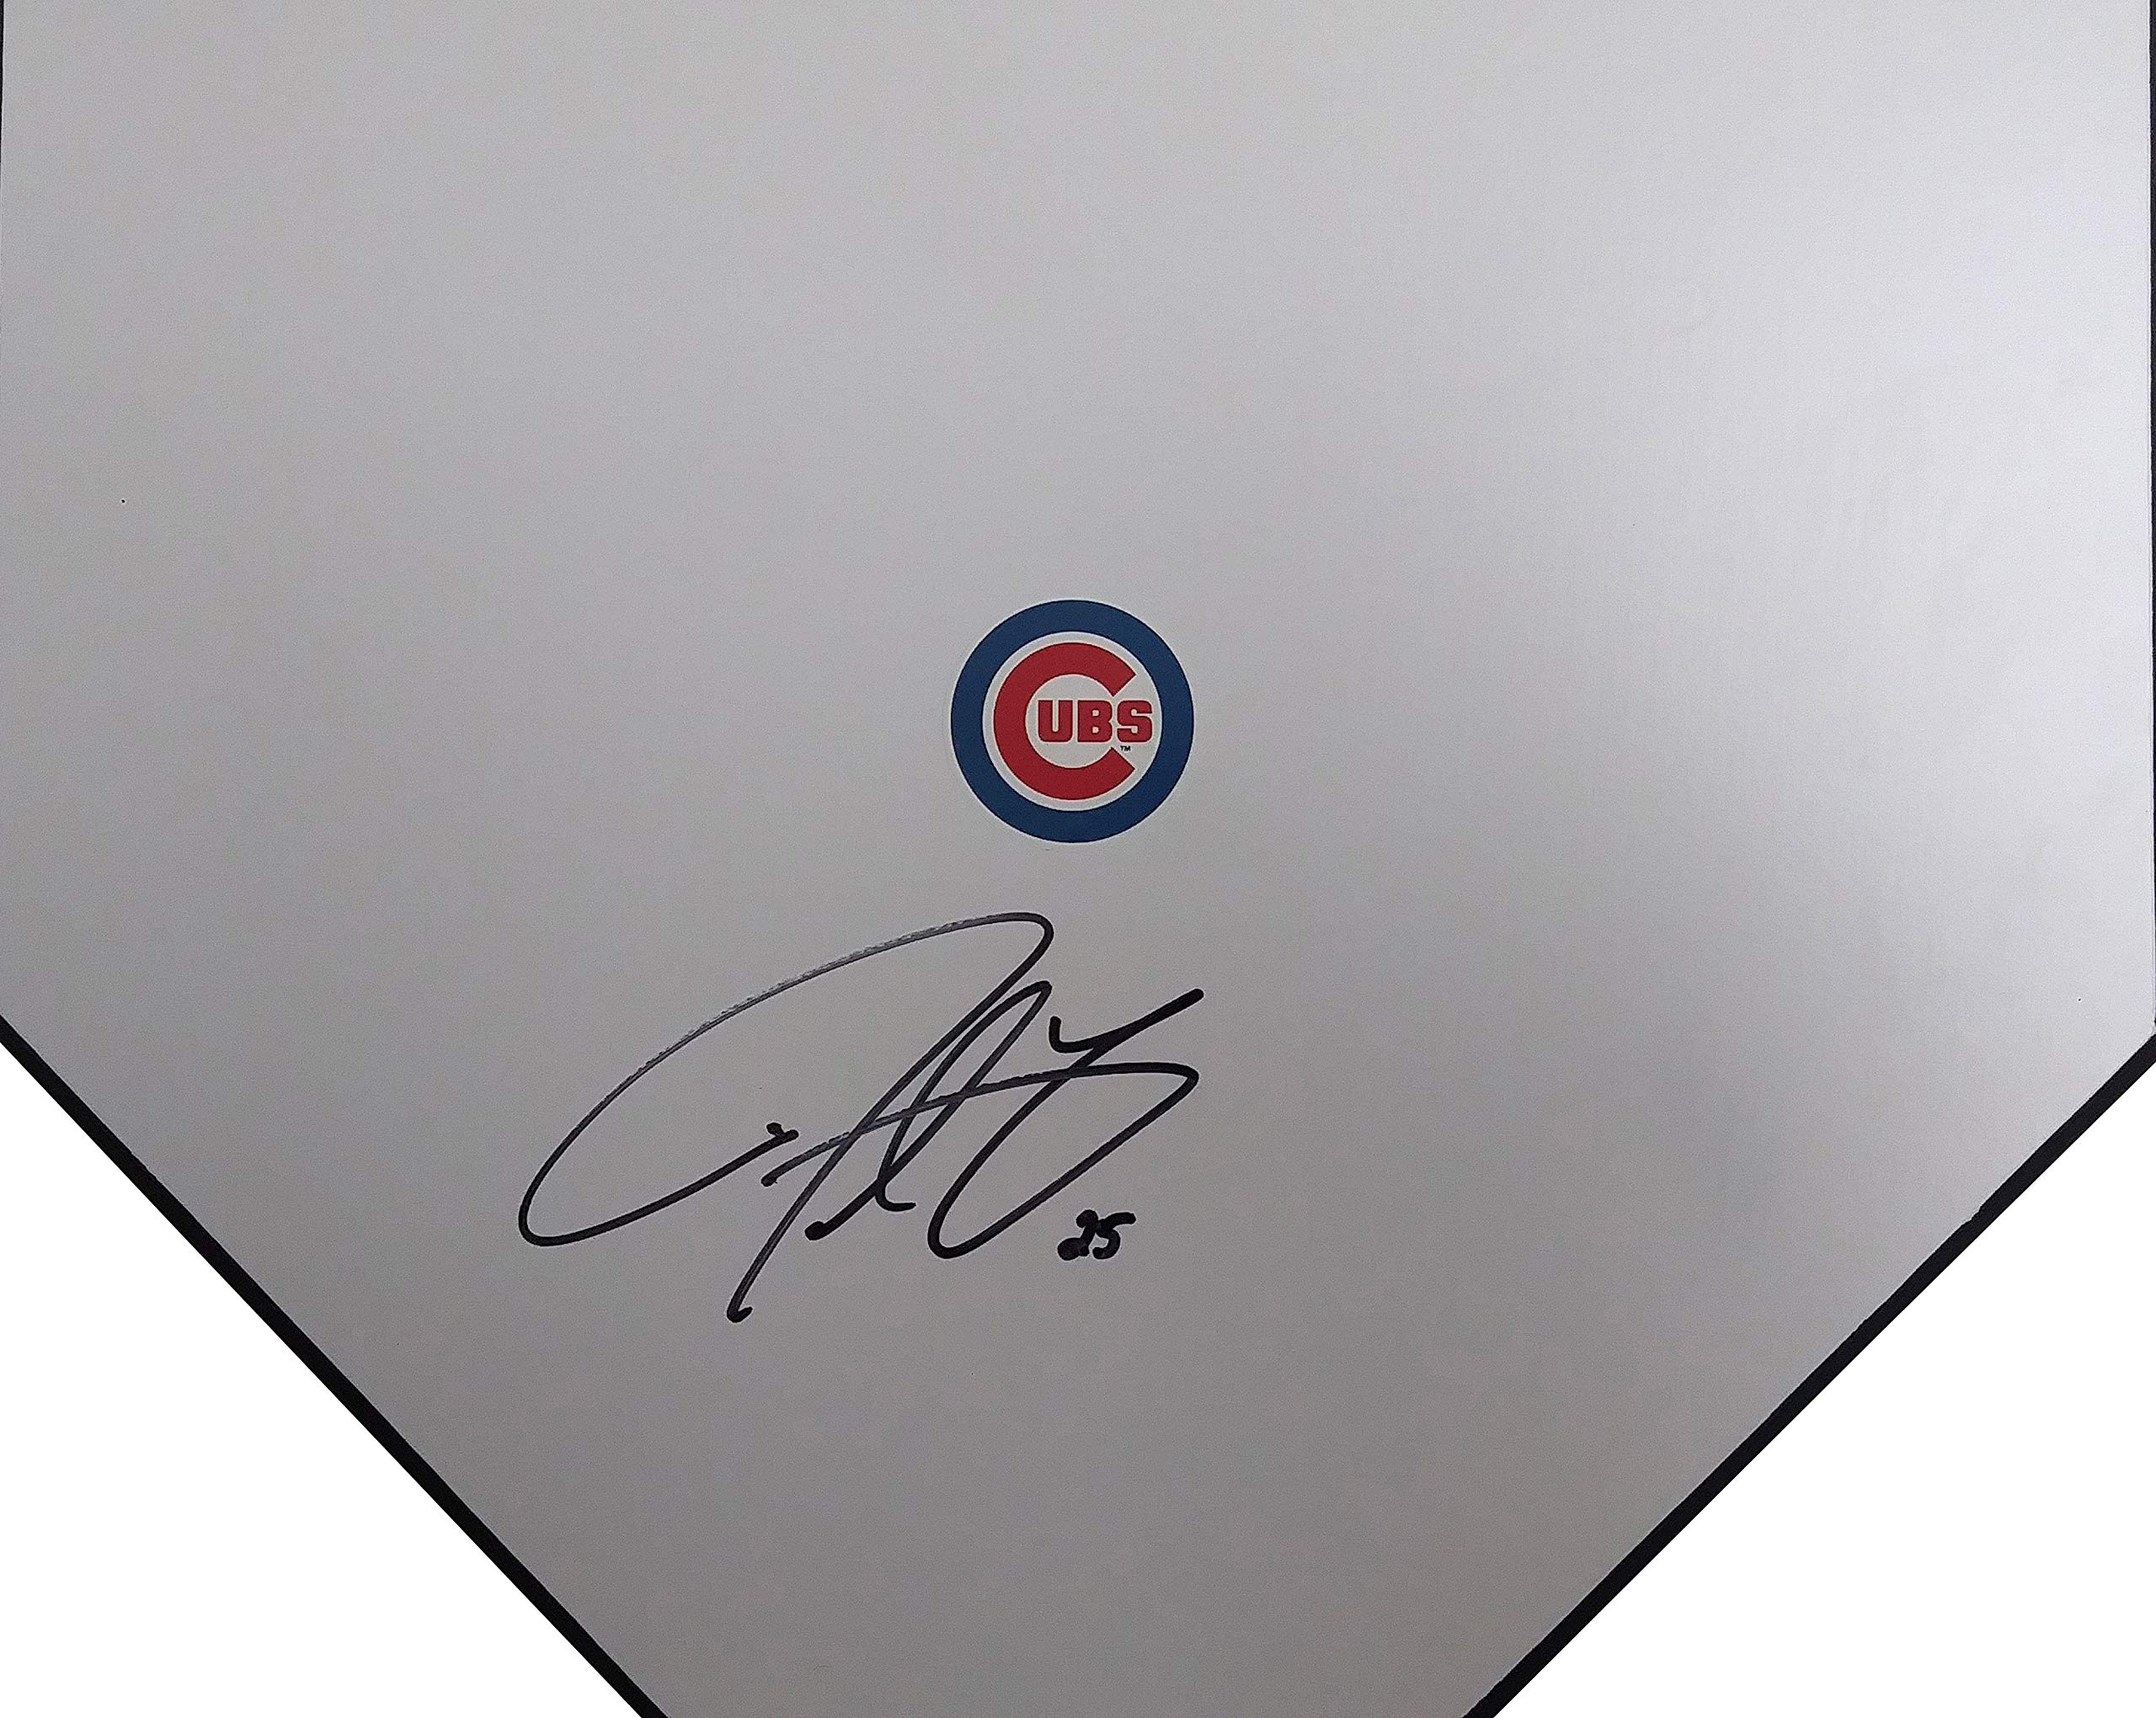 Chicago Cubs Derrek Lee Autographed Hand Signed Baseball Home Plate Base with Proof Photo of Signing and COA